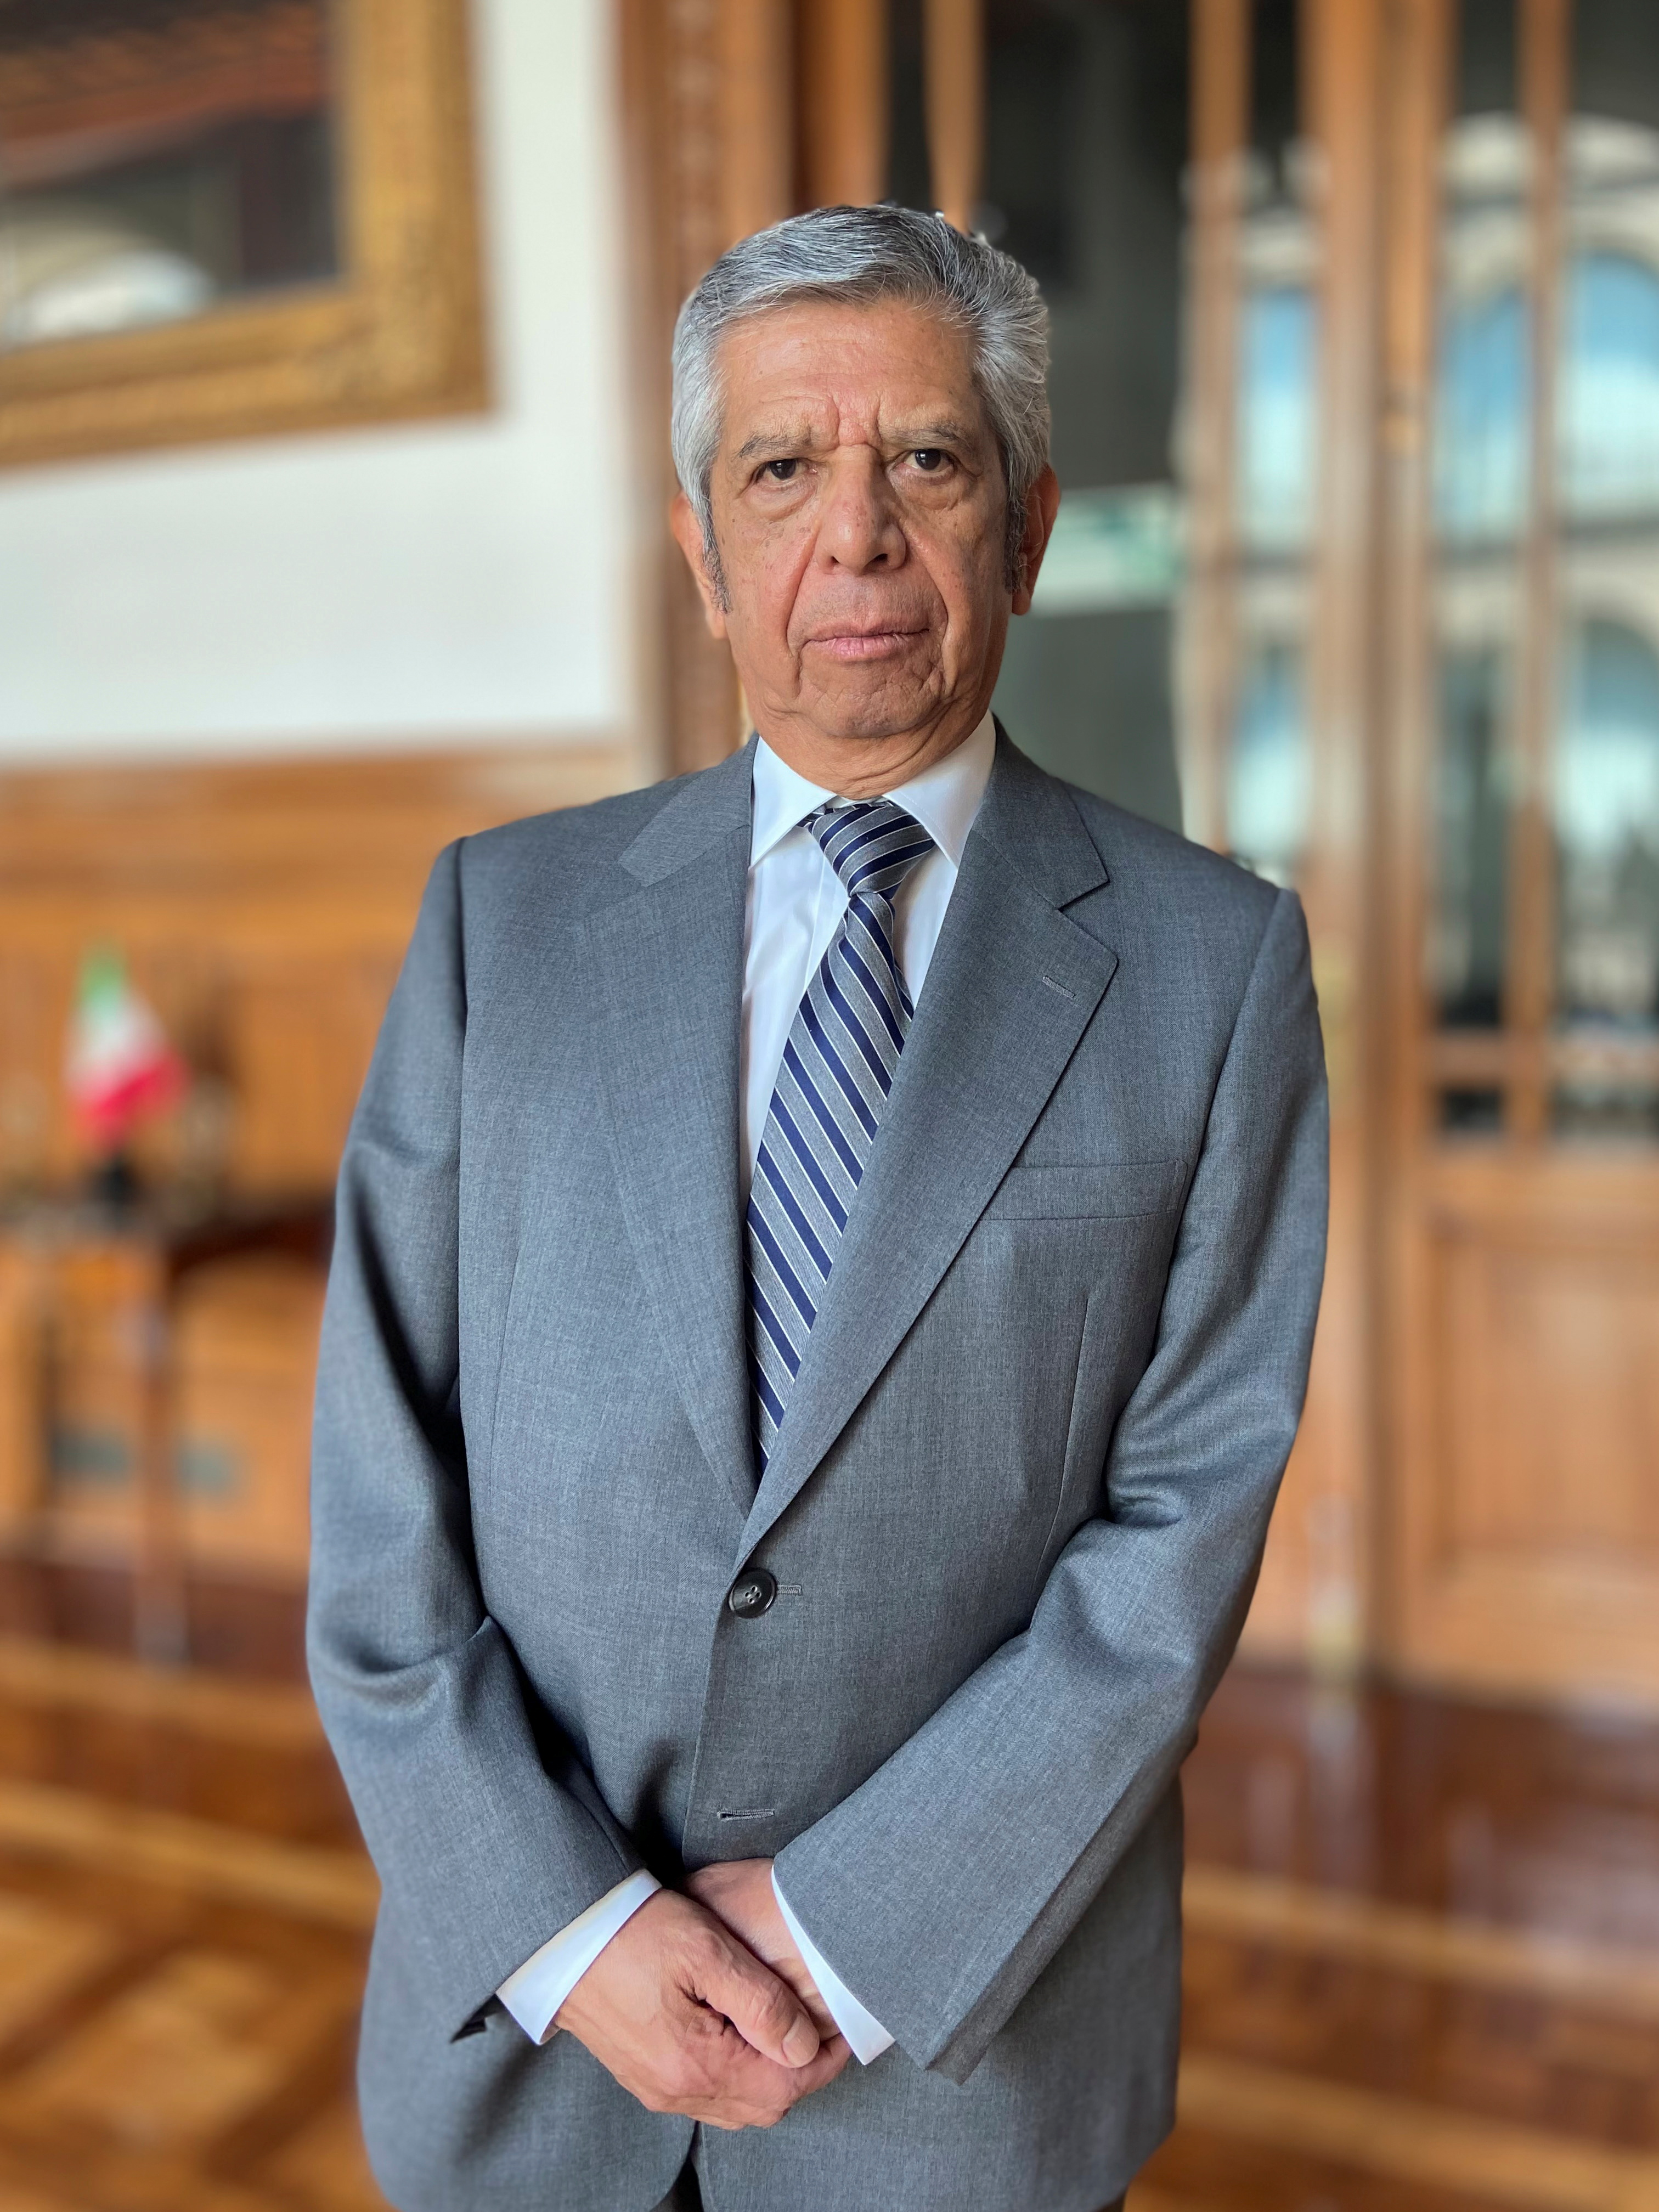 Newly appointed head of the Public Administration Ministry (SFP) Roberto Saucedo poses for a photo at the National Palace in Mexico City, Mexico June 21, 2021. Mexico's Presidency/Handout via REUTERS